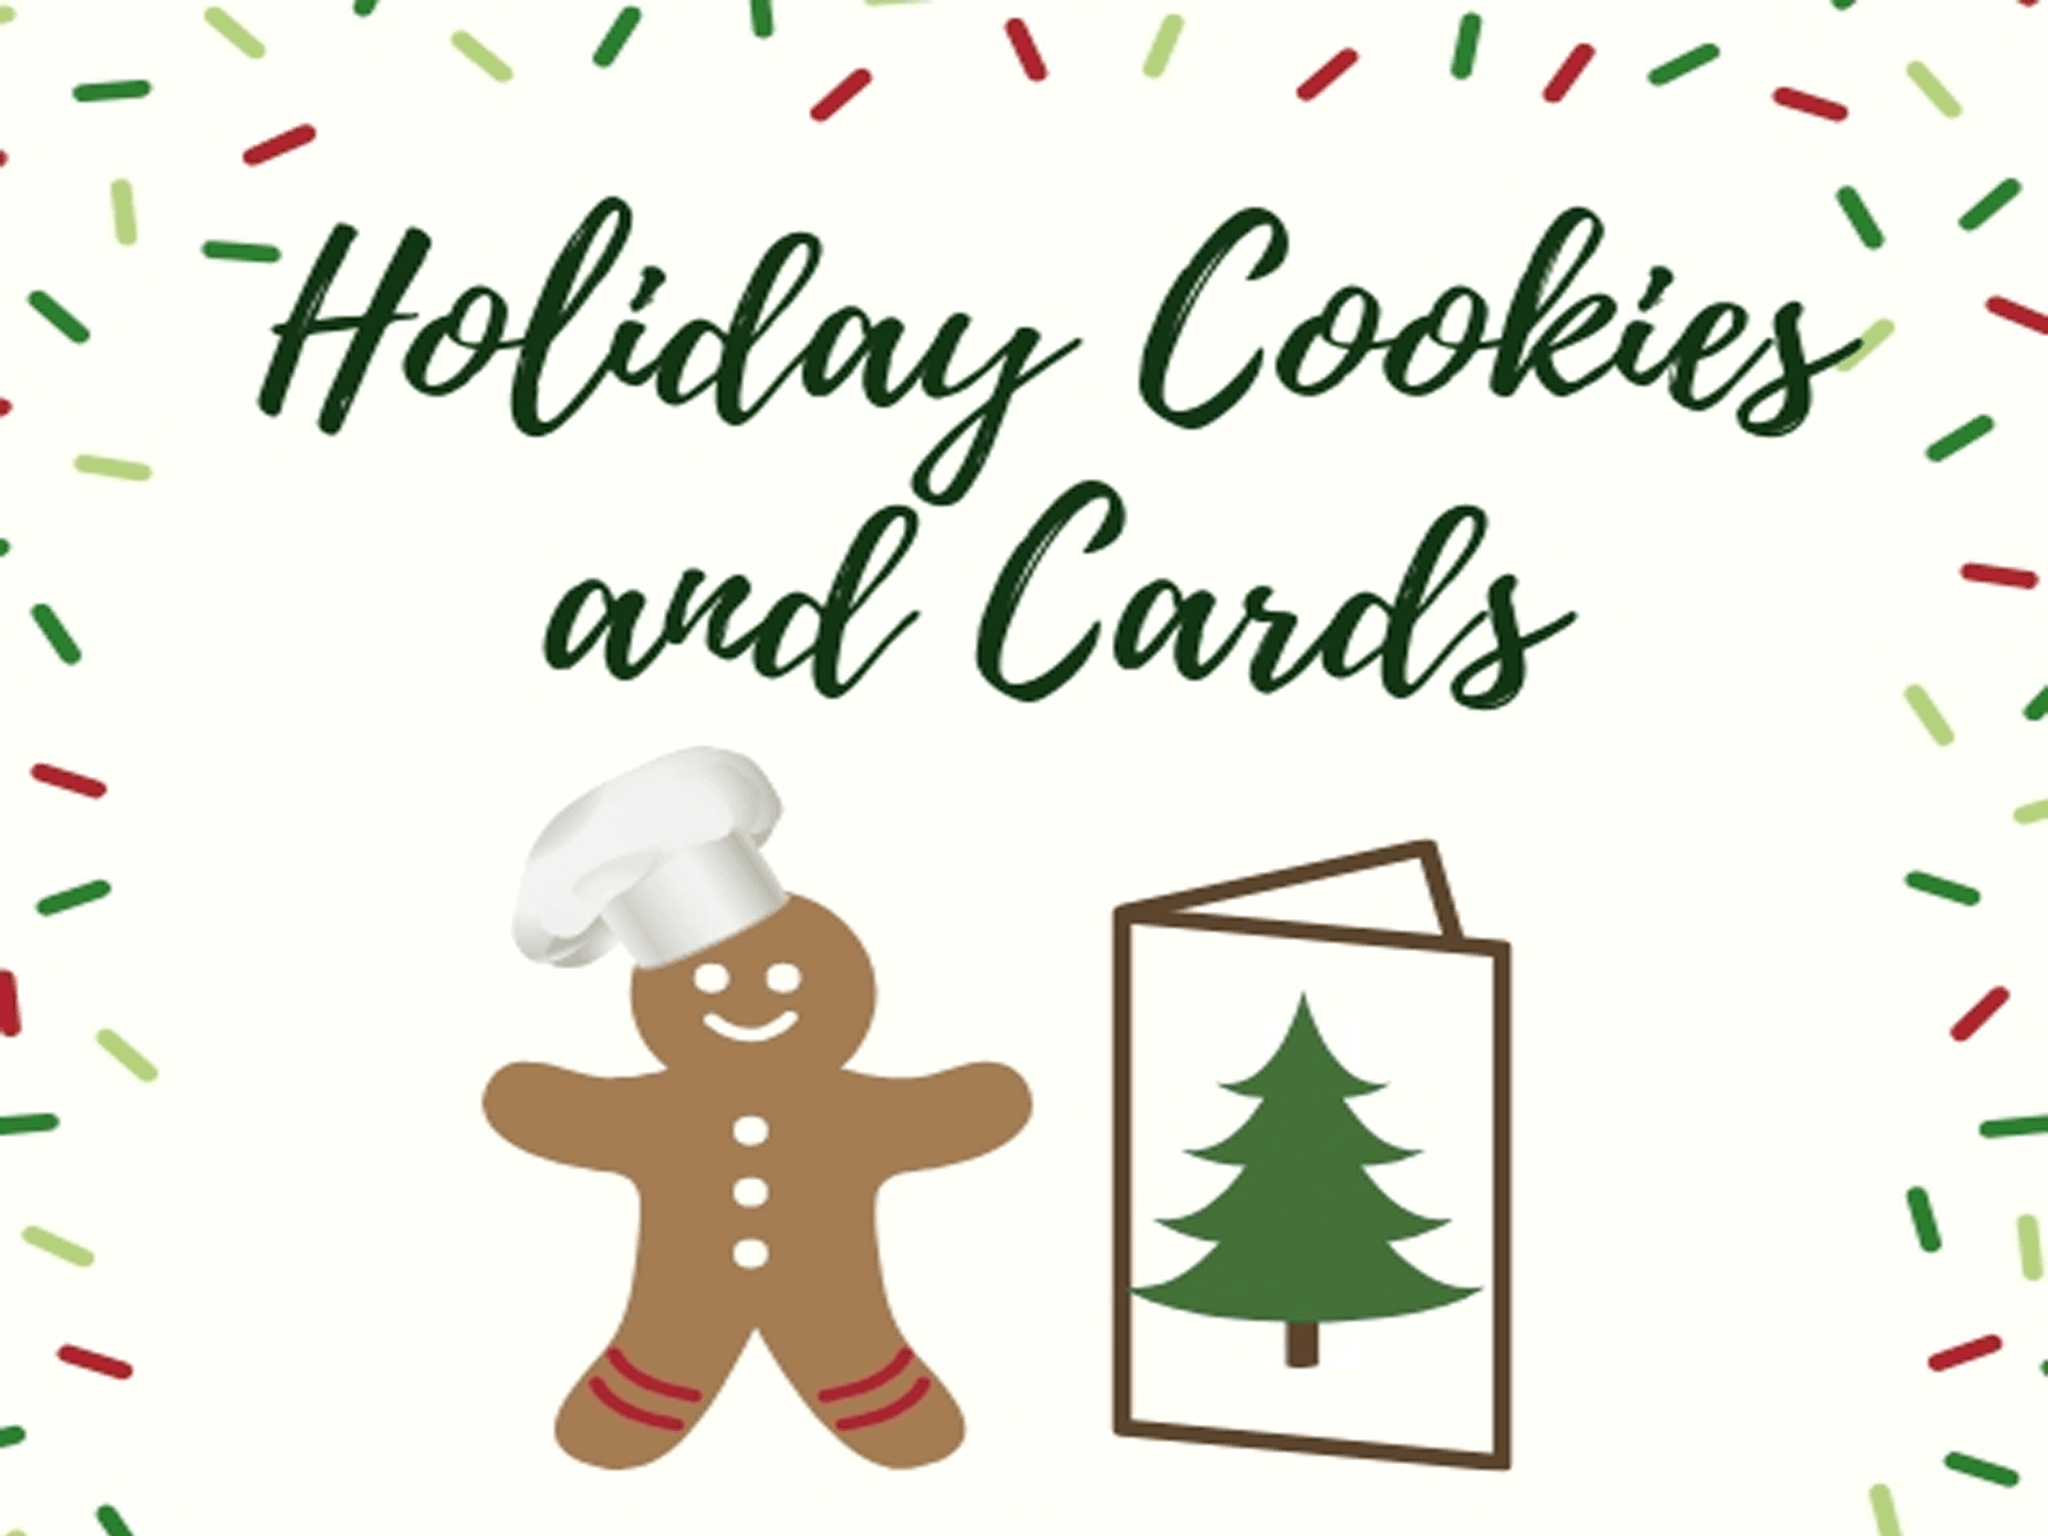 HolidayCookiesCardsGraphic